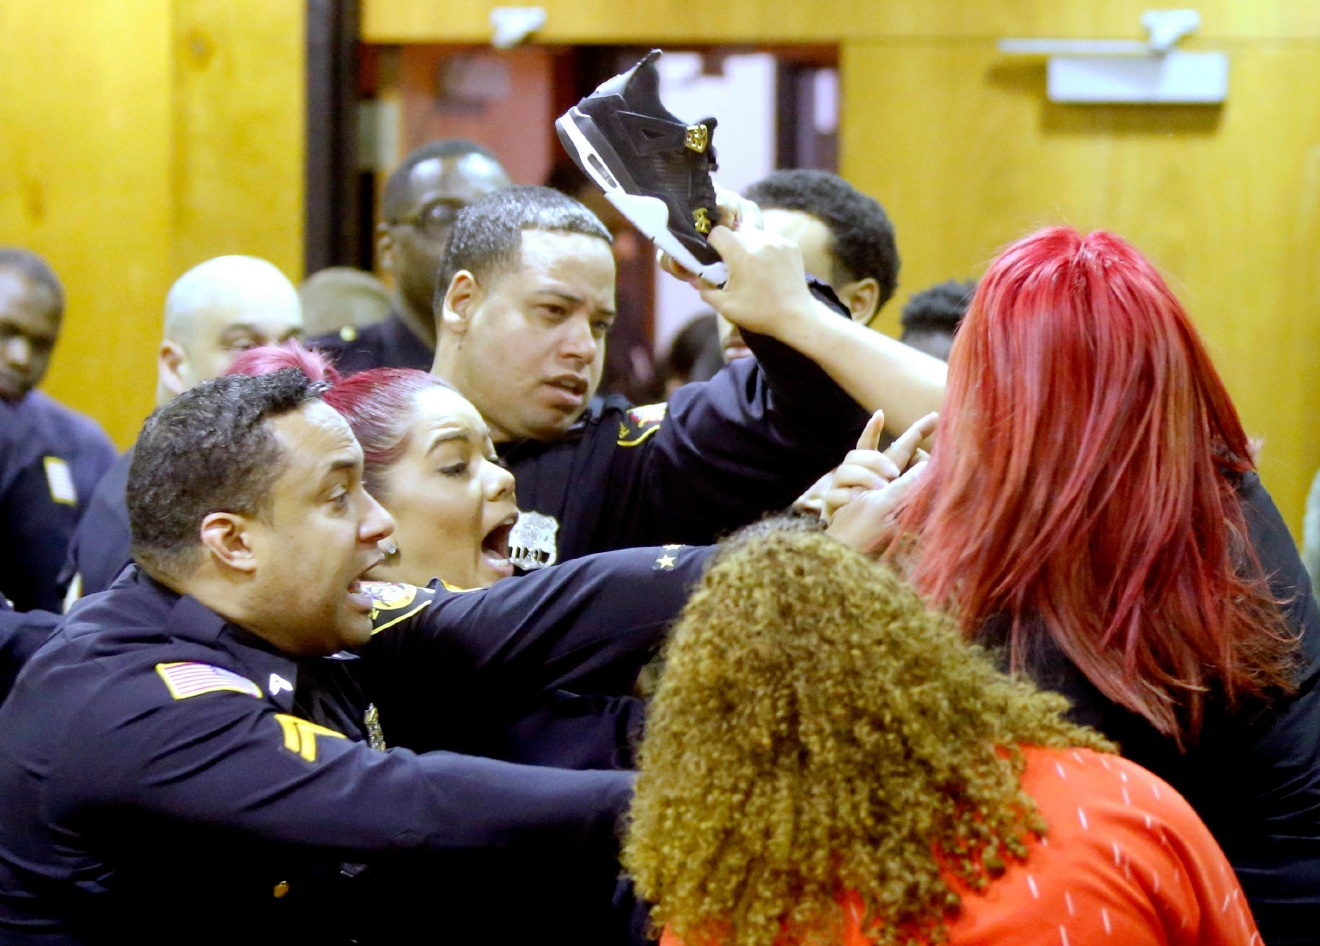 Sheriff's Deputies keep Debora Hernandez, right, the mother of Antonio Vega's daughter, from hitting a defendant's family member with her shoe after an altercation between the two groups broke out at the end of a hearing where Clarence Williams and Gerry Thomas made their appearances for murder, Friday, March 24, 2017, in Paterson, N.J.   (Aristide Economopoulos /NJ Advance Media via AP, Pool)